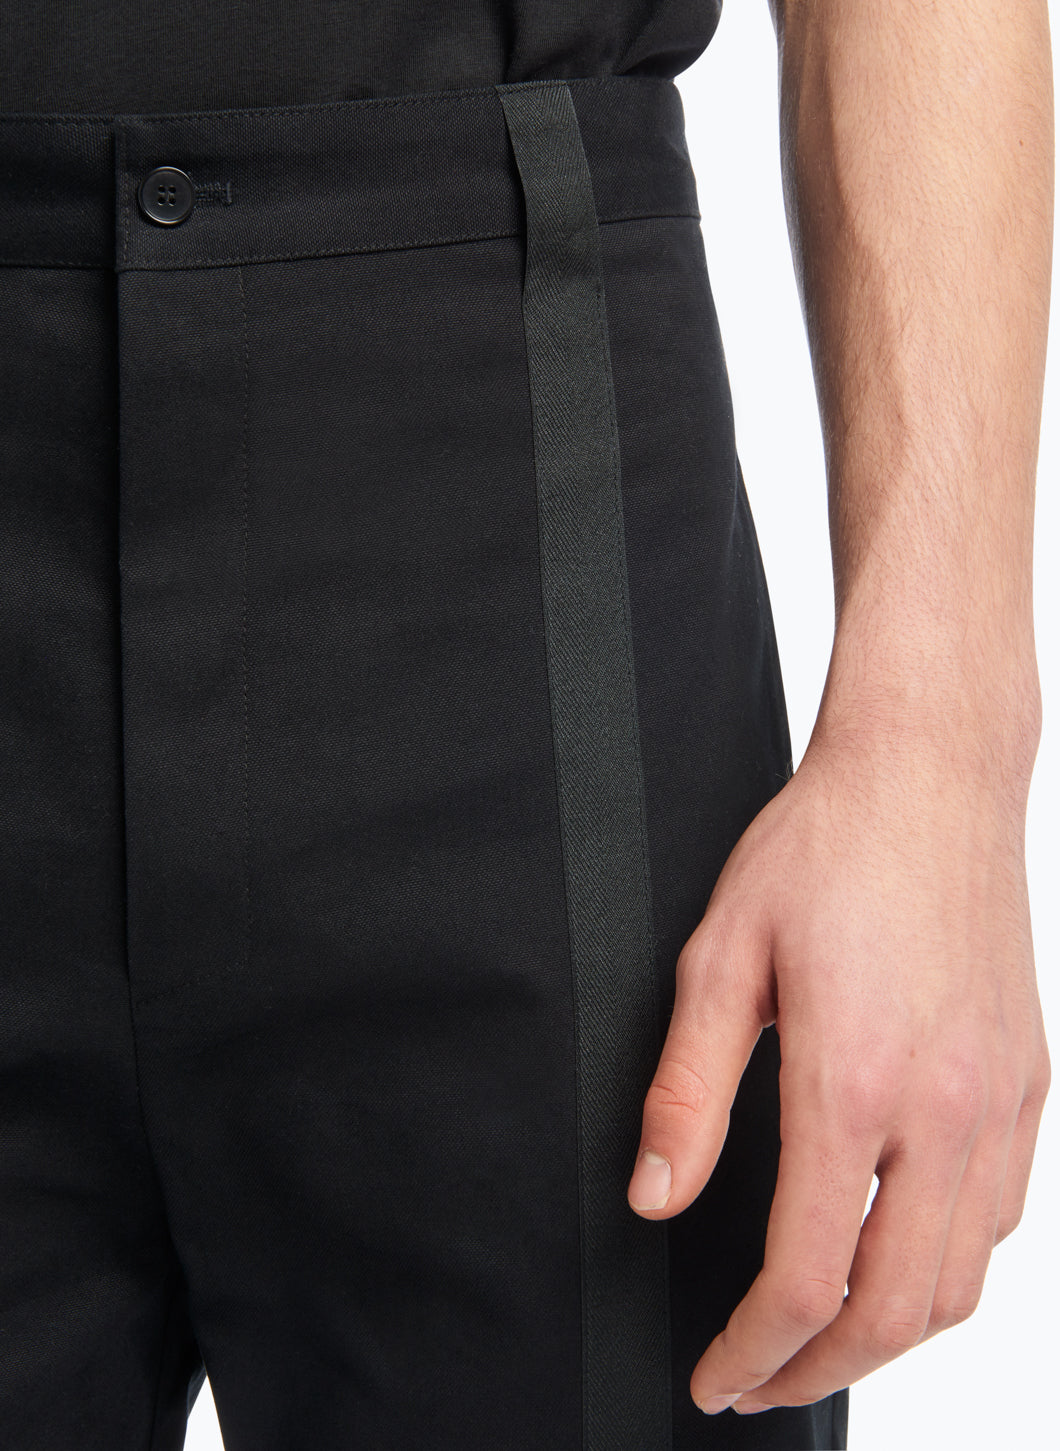 Pants with Vertical Bands in Black Gabardine with Black Trim